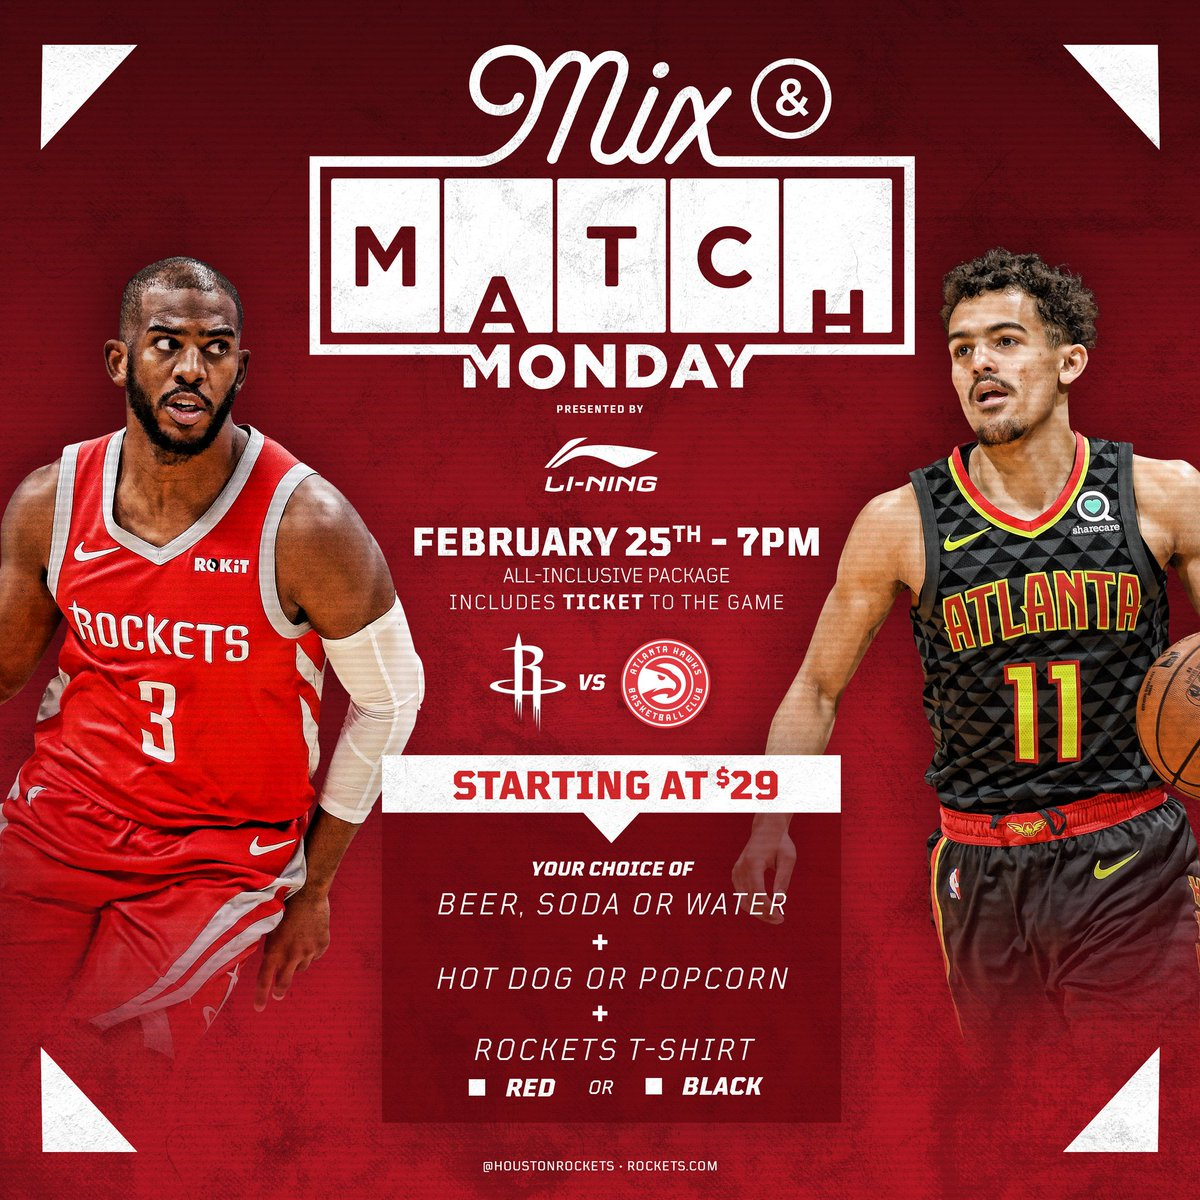 Join us for Mix & Match Monday (Feb 25th) as the #Rockets take on the Hawks!   The Mix & Match special starts at just $29:  1 Ticket AND 1 Beer, Soda, or Water AND 1 Hot Dog or Popcorn AND 1 Red or Black T-Shirt  🚀 » http://bit.ly/2SRc1v9